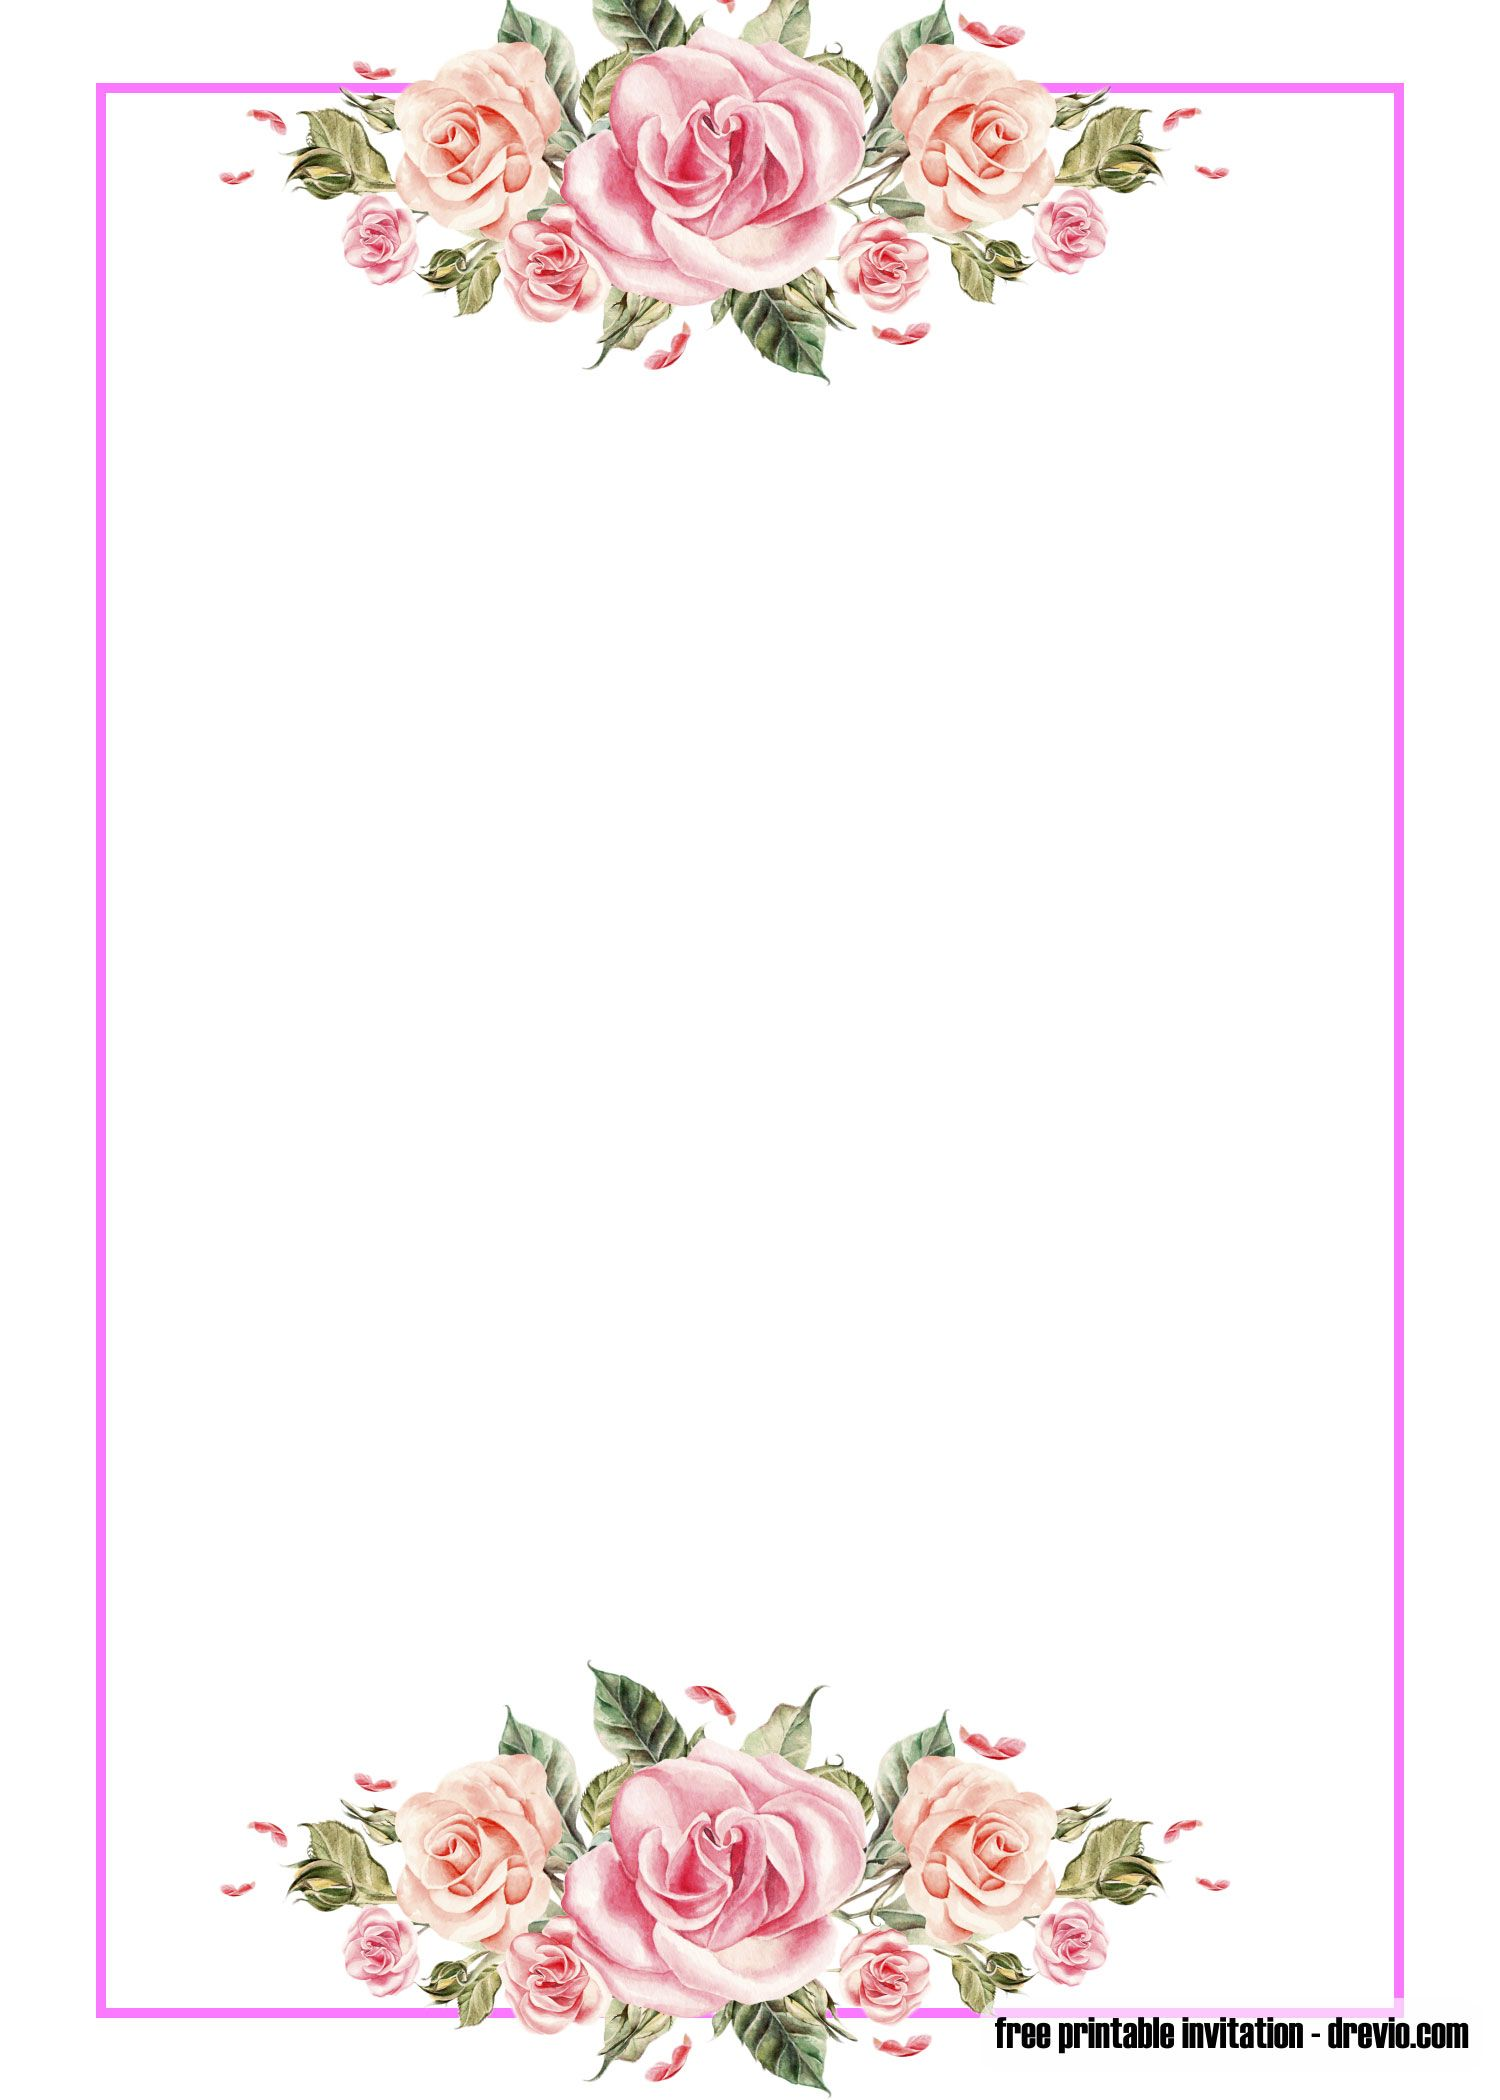 FREE Pink Floral Invitation Templates (With images